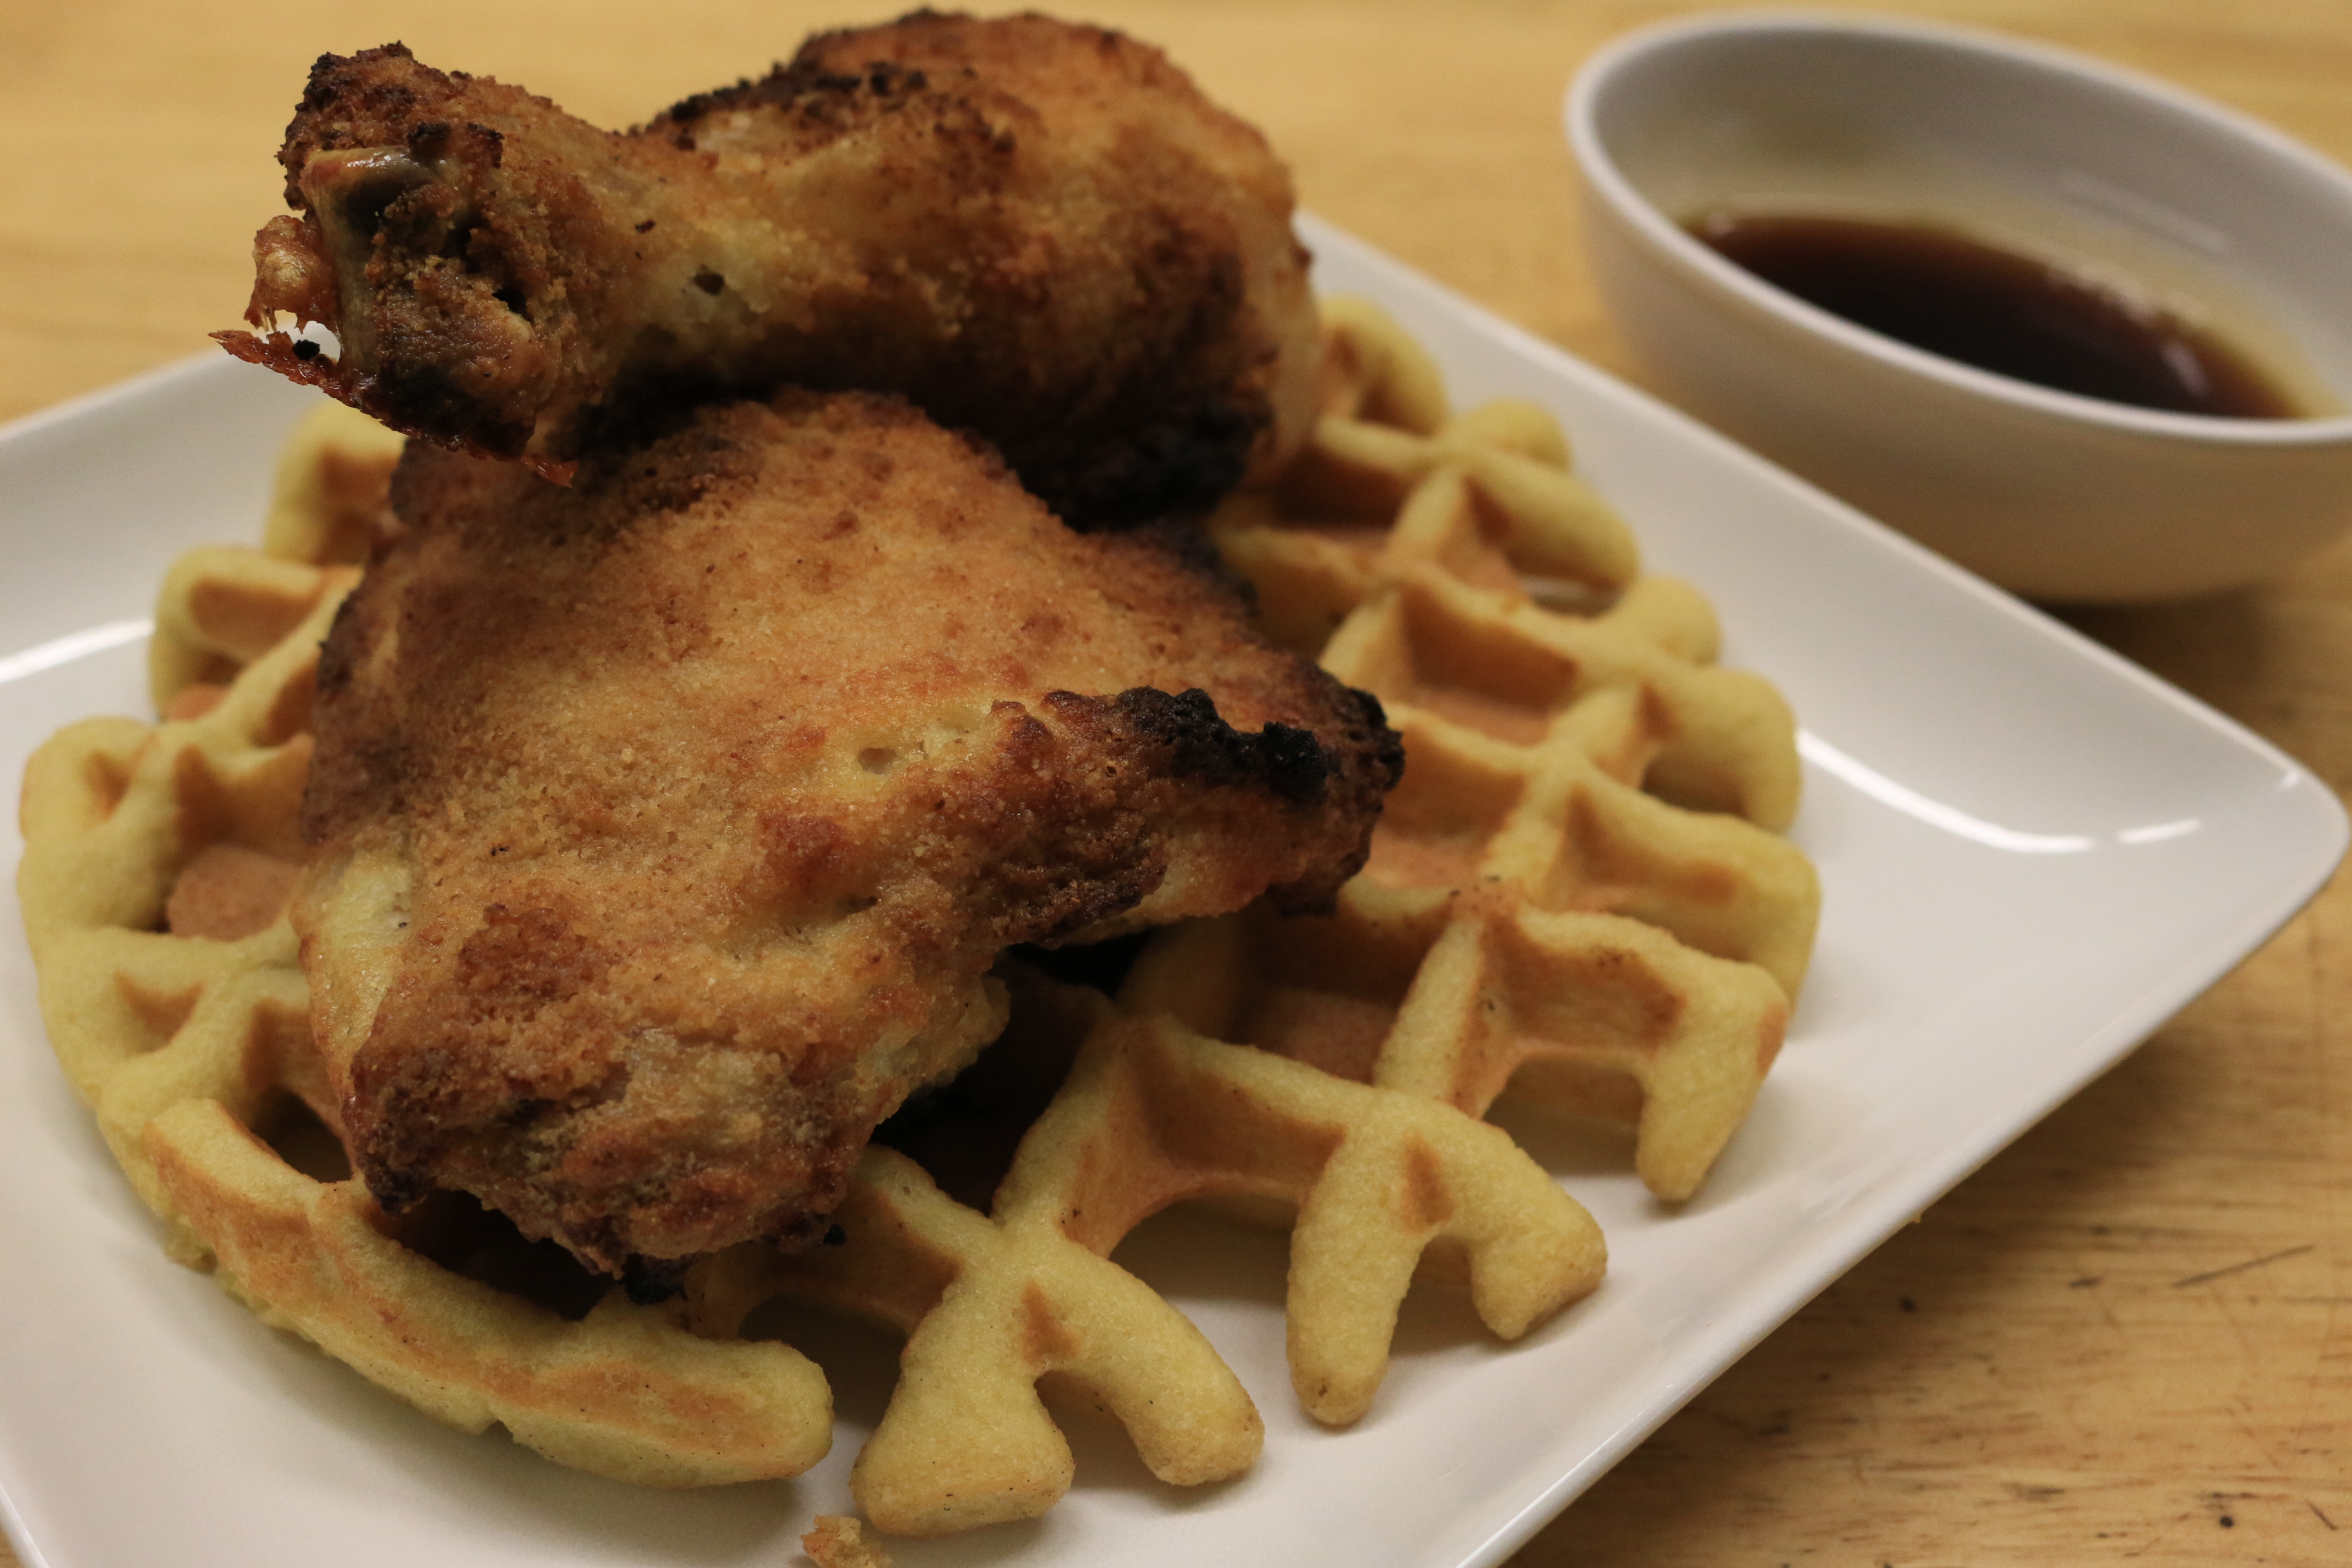 Paleo Waffles and Oven Fried Chicken (Grain-Free)